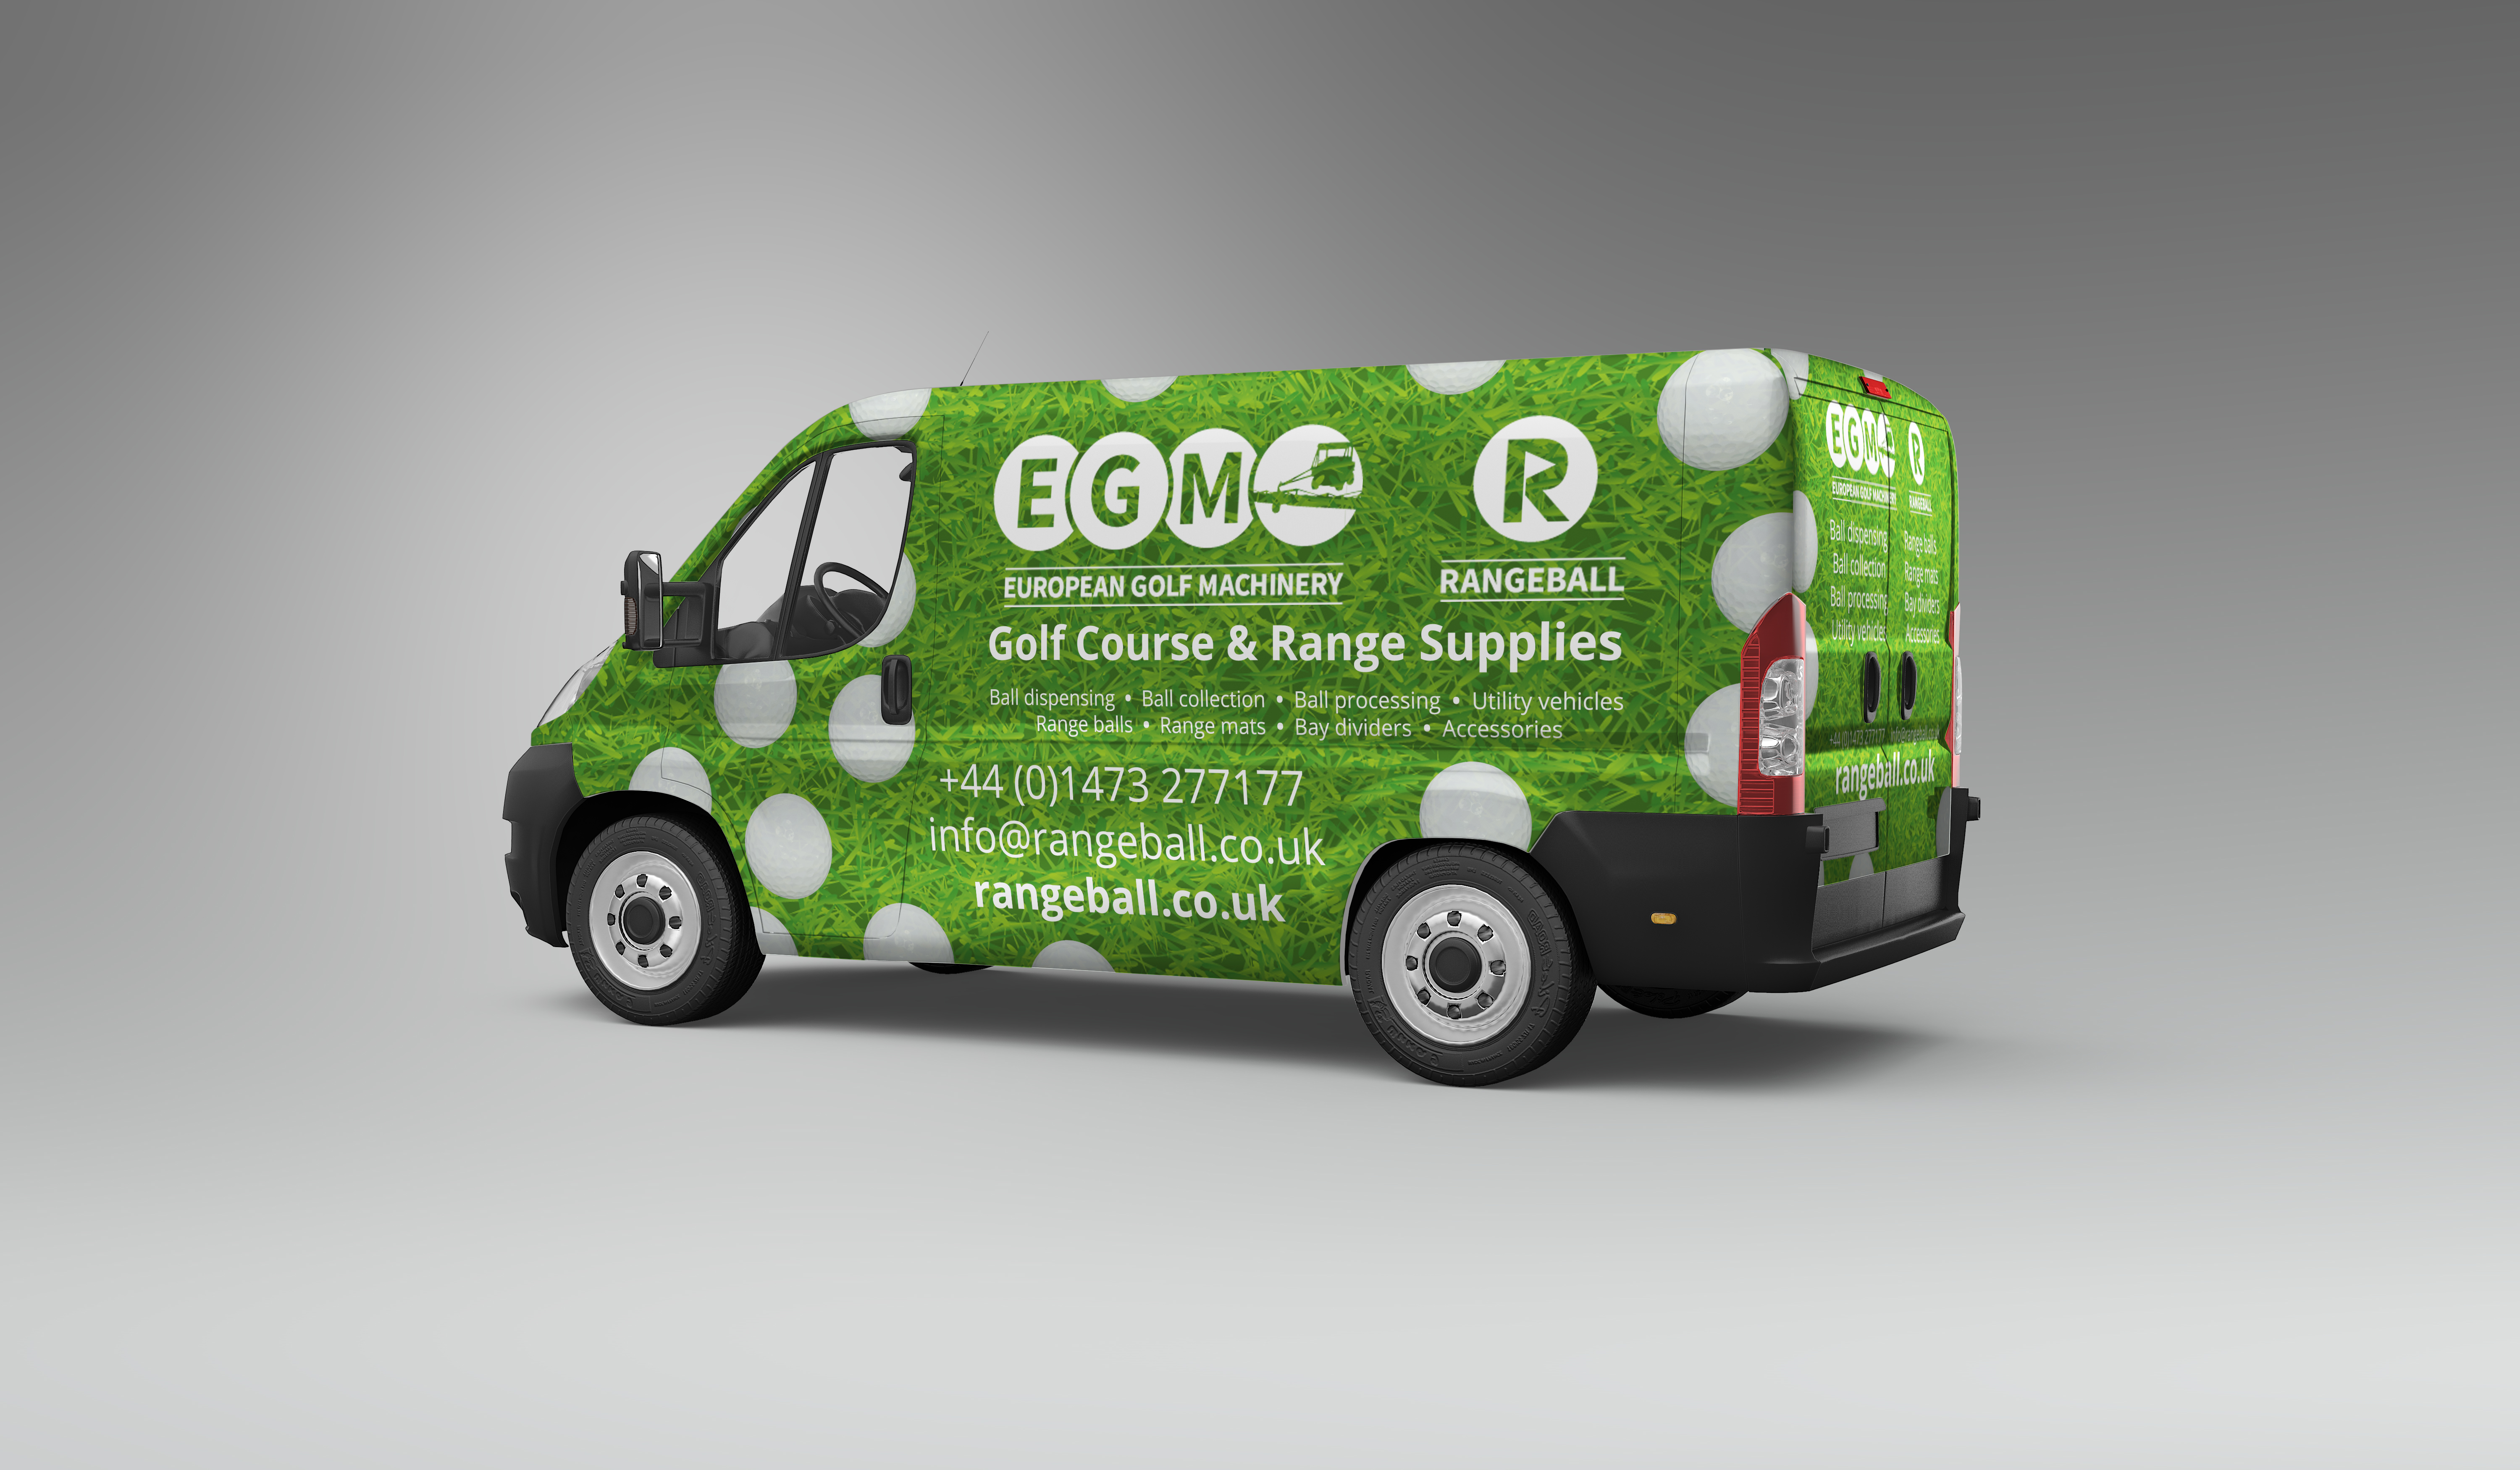 Van with printed vehicle livery